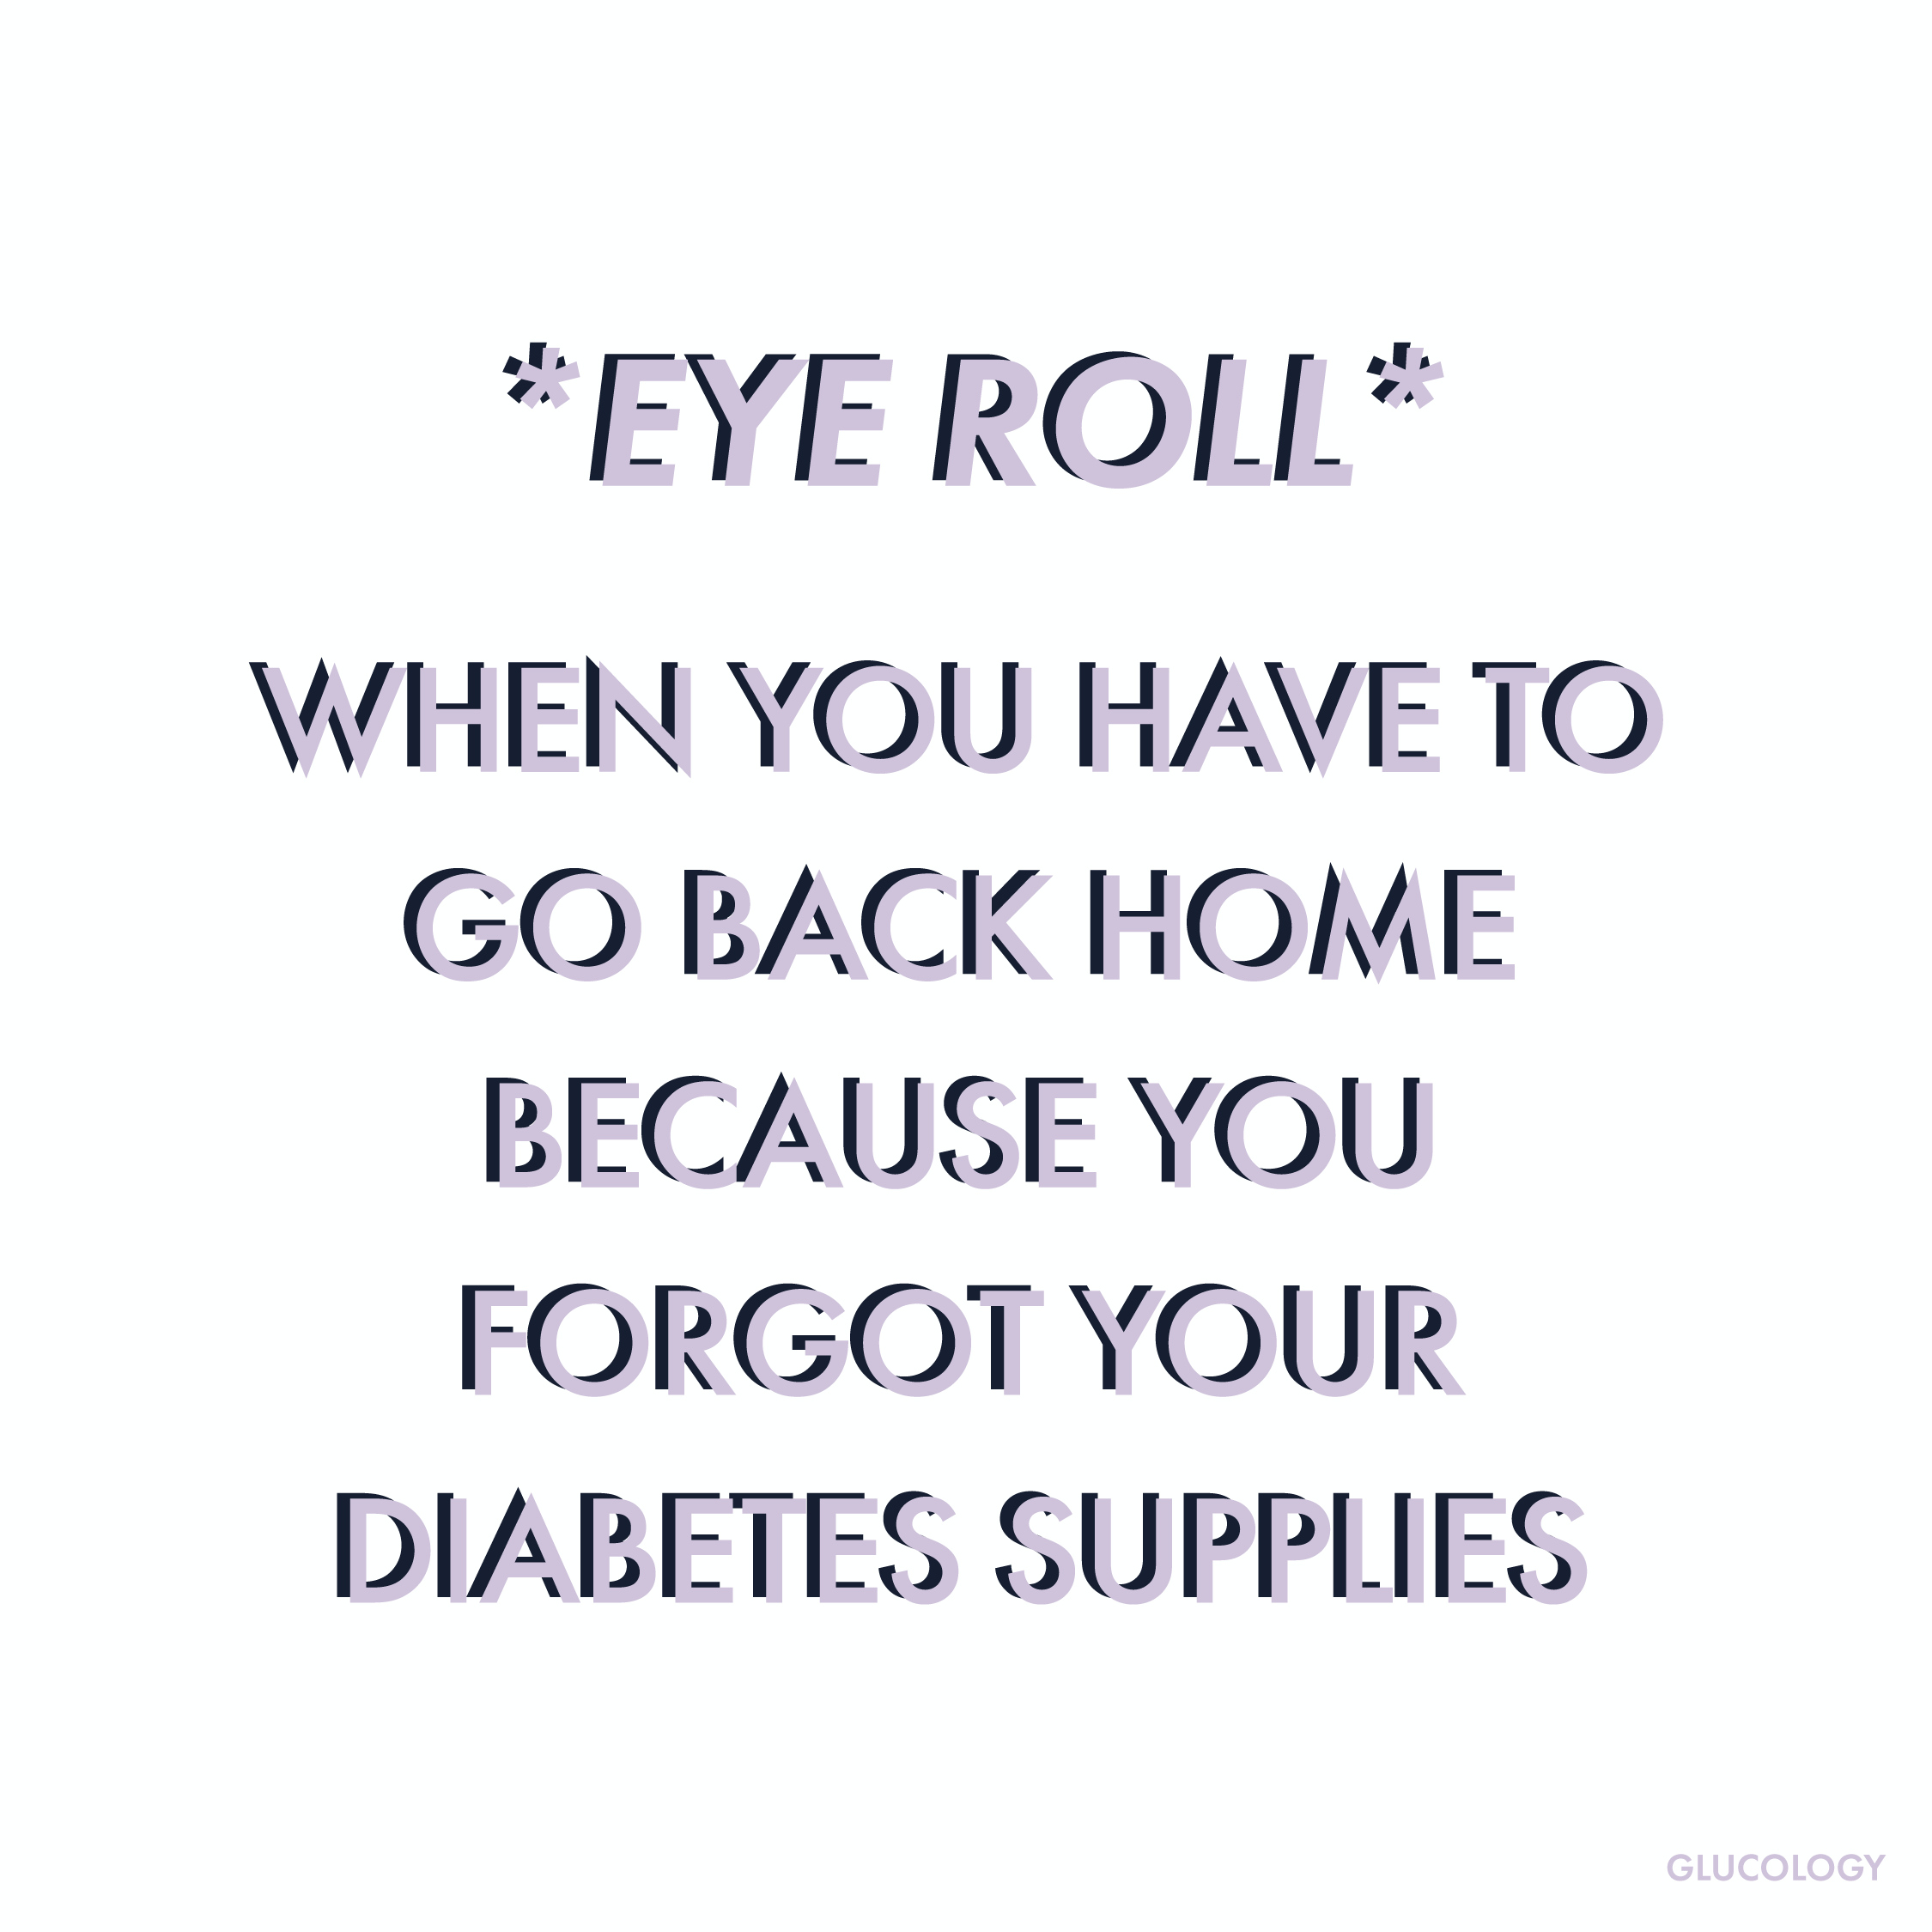 Forgetting diabetes supplies at home meme